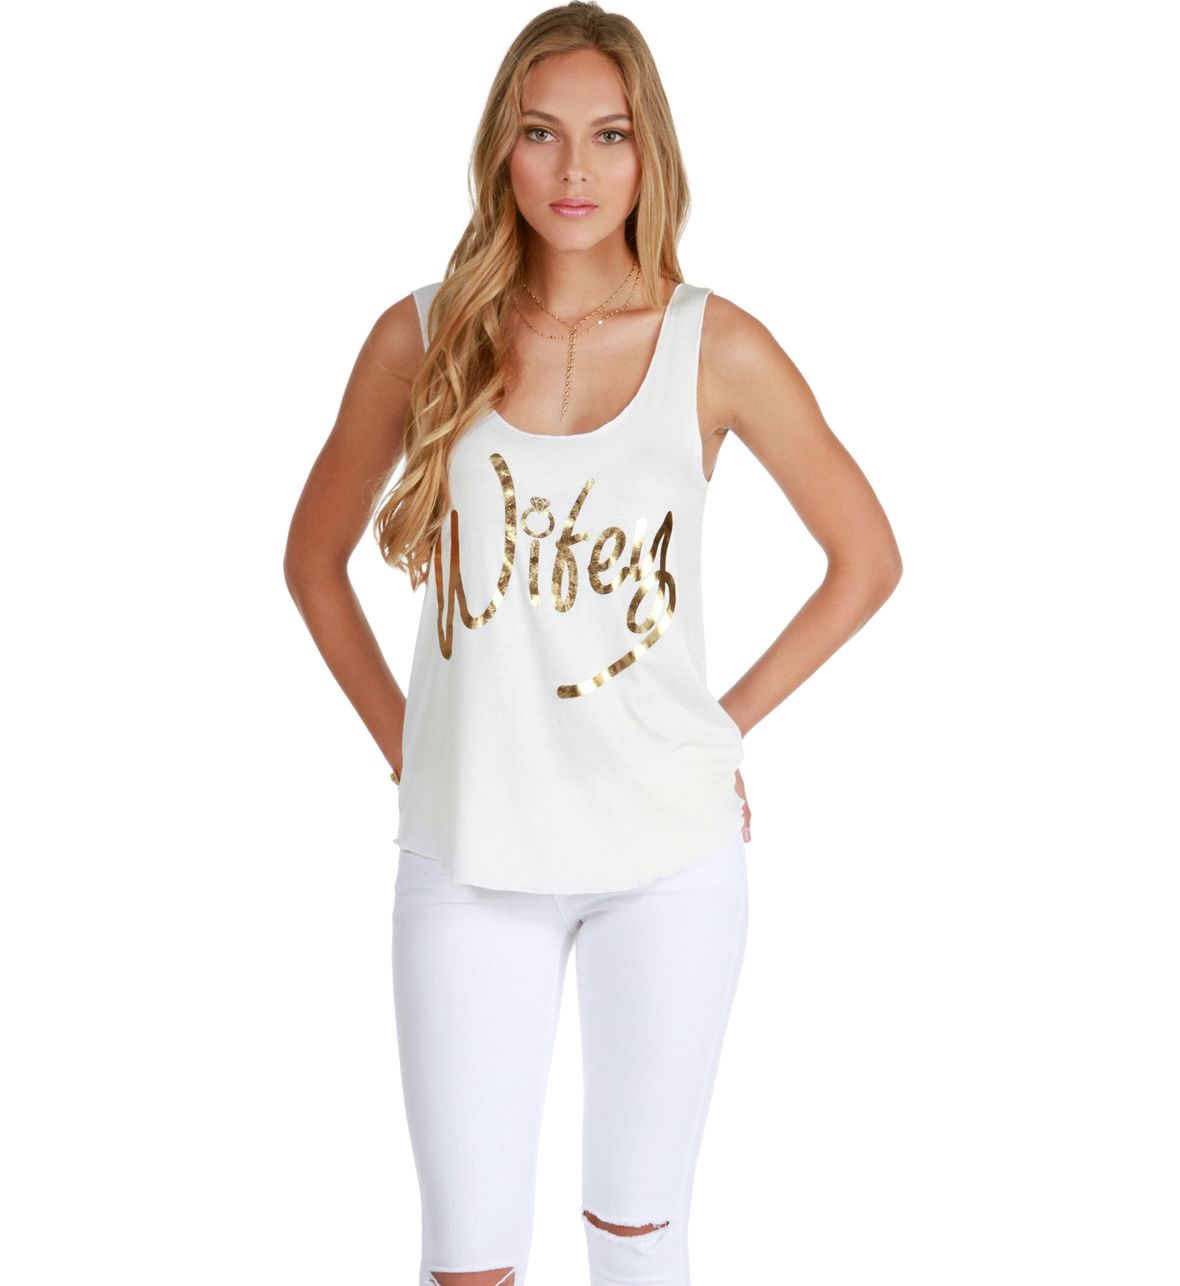 White Wifey Tank Top at WindsorStore